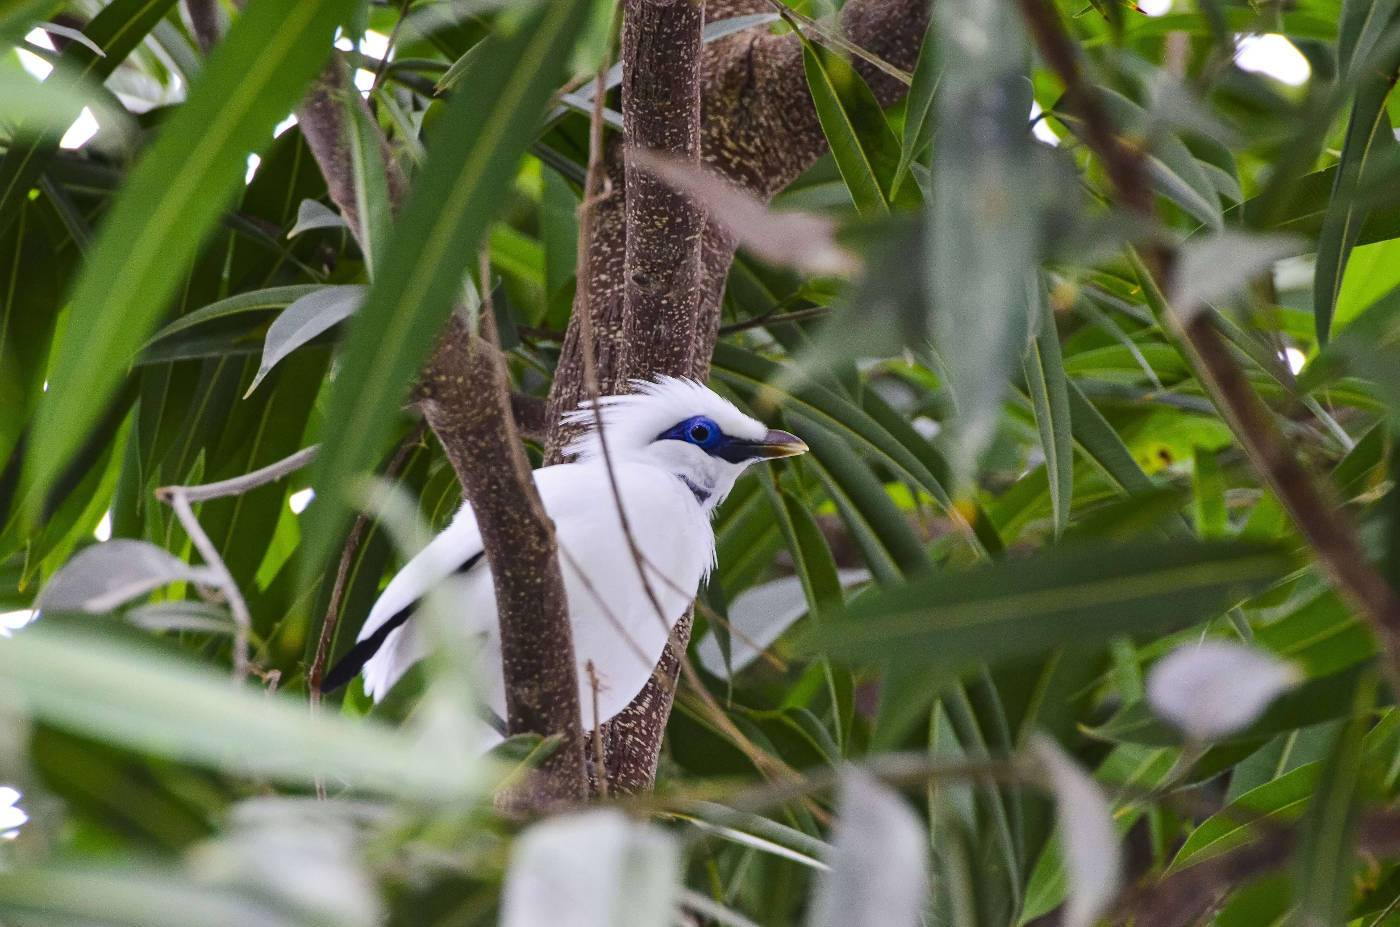 Curig Bali conservation Mara River Safari Lodge Bali myna sterling